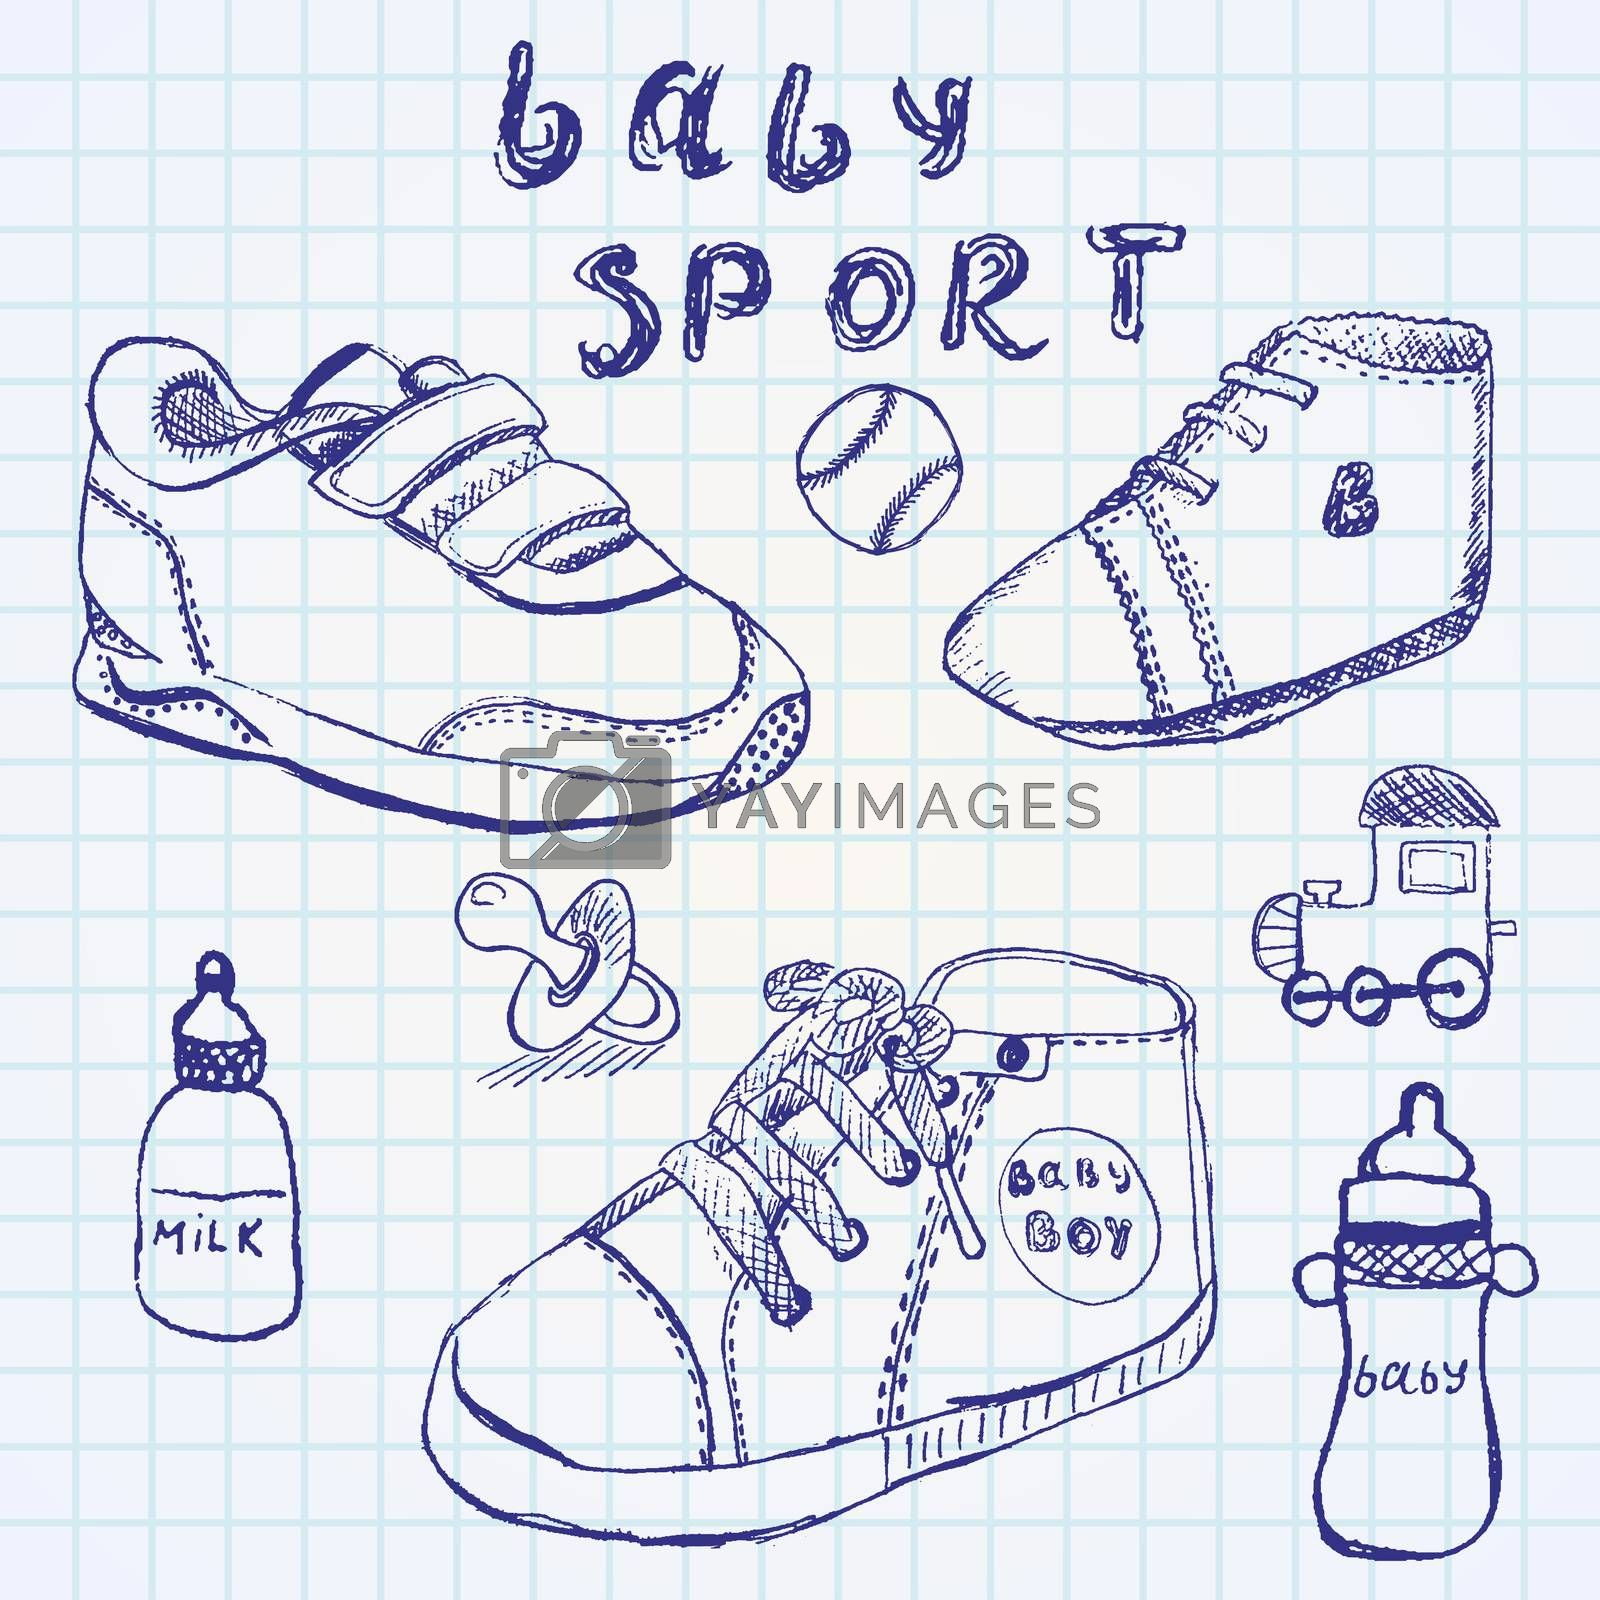 Baby shoes set sketch handdrawn on notebook paper.